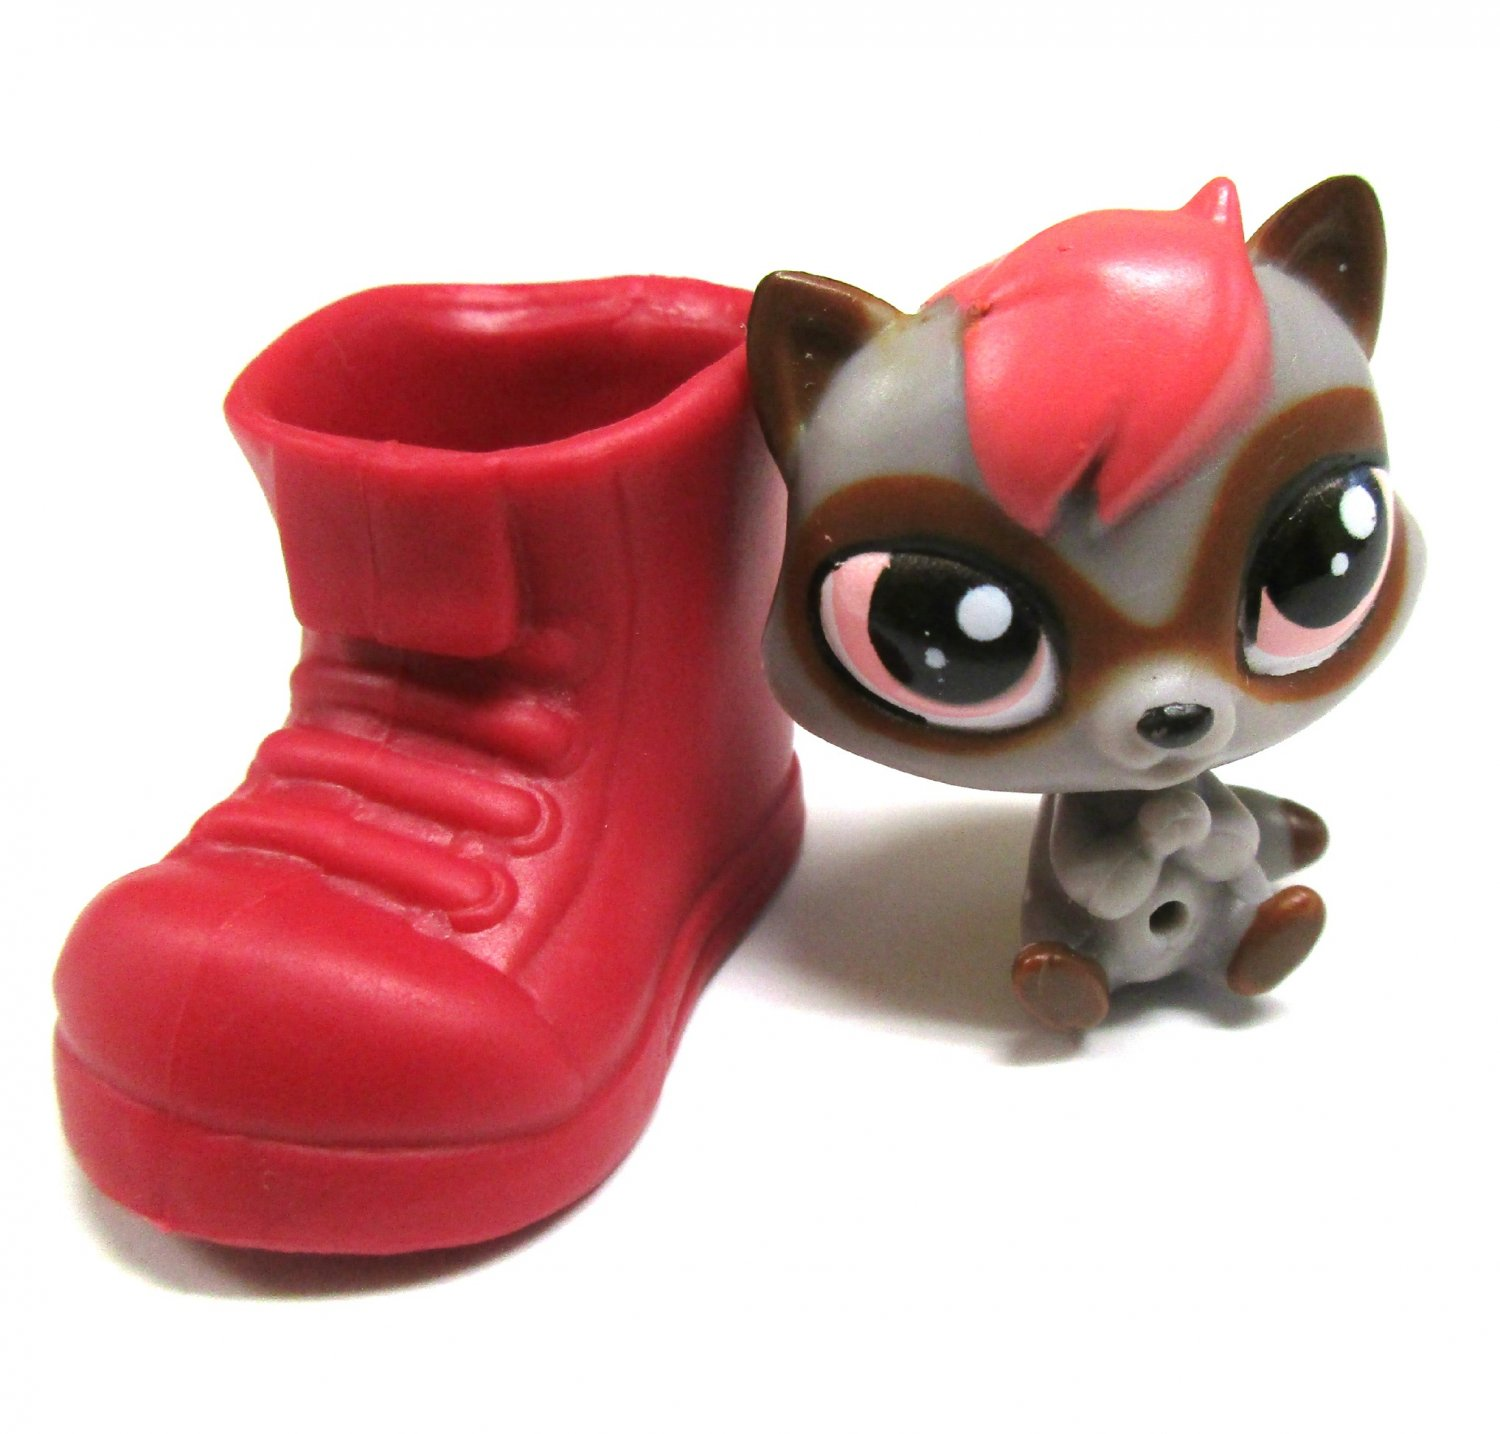 Littlest Pet Shop Raccoon Mini LPS Toy Collectible Figure & Hideaway Shoe